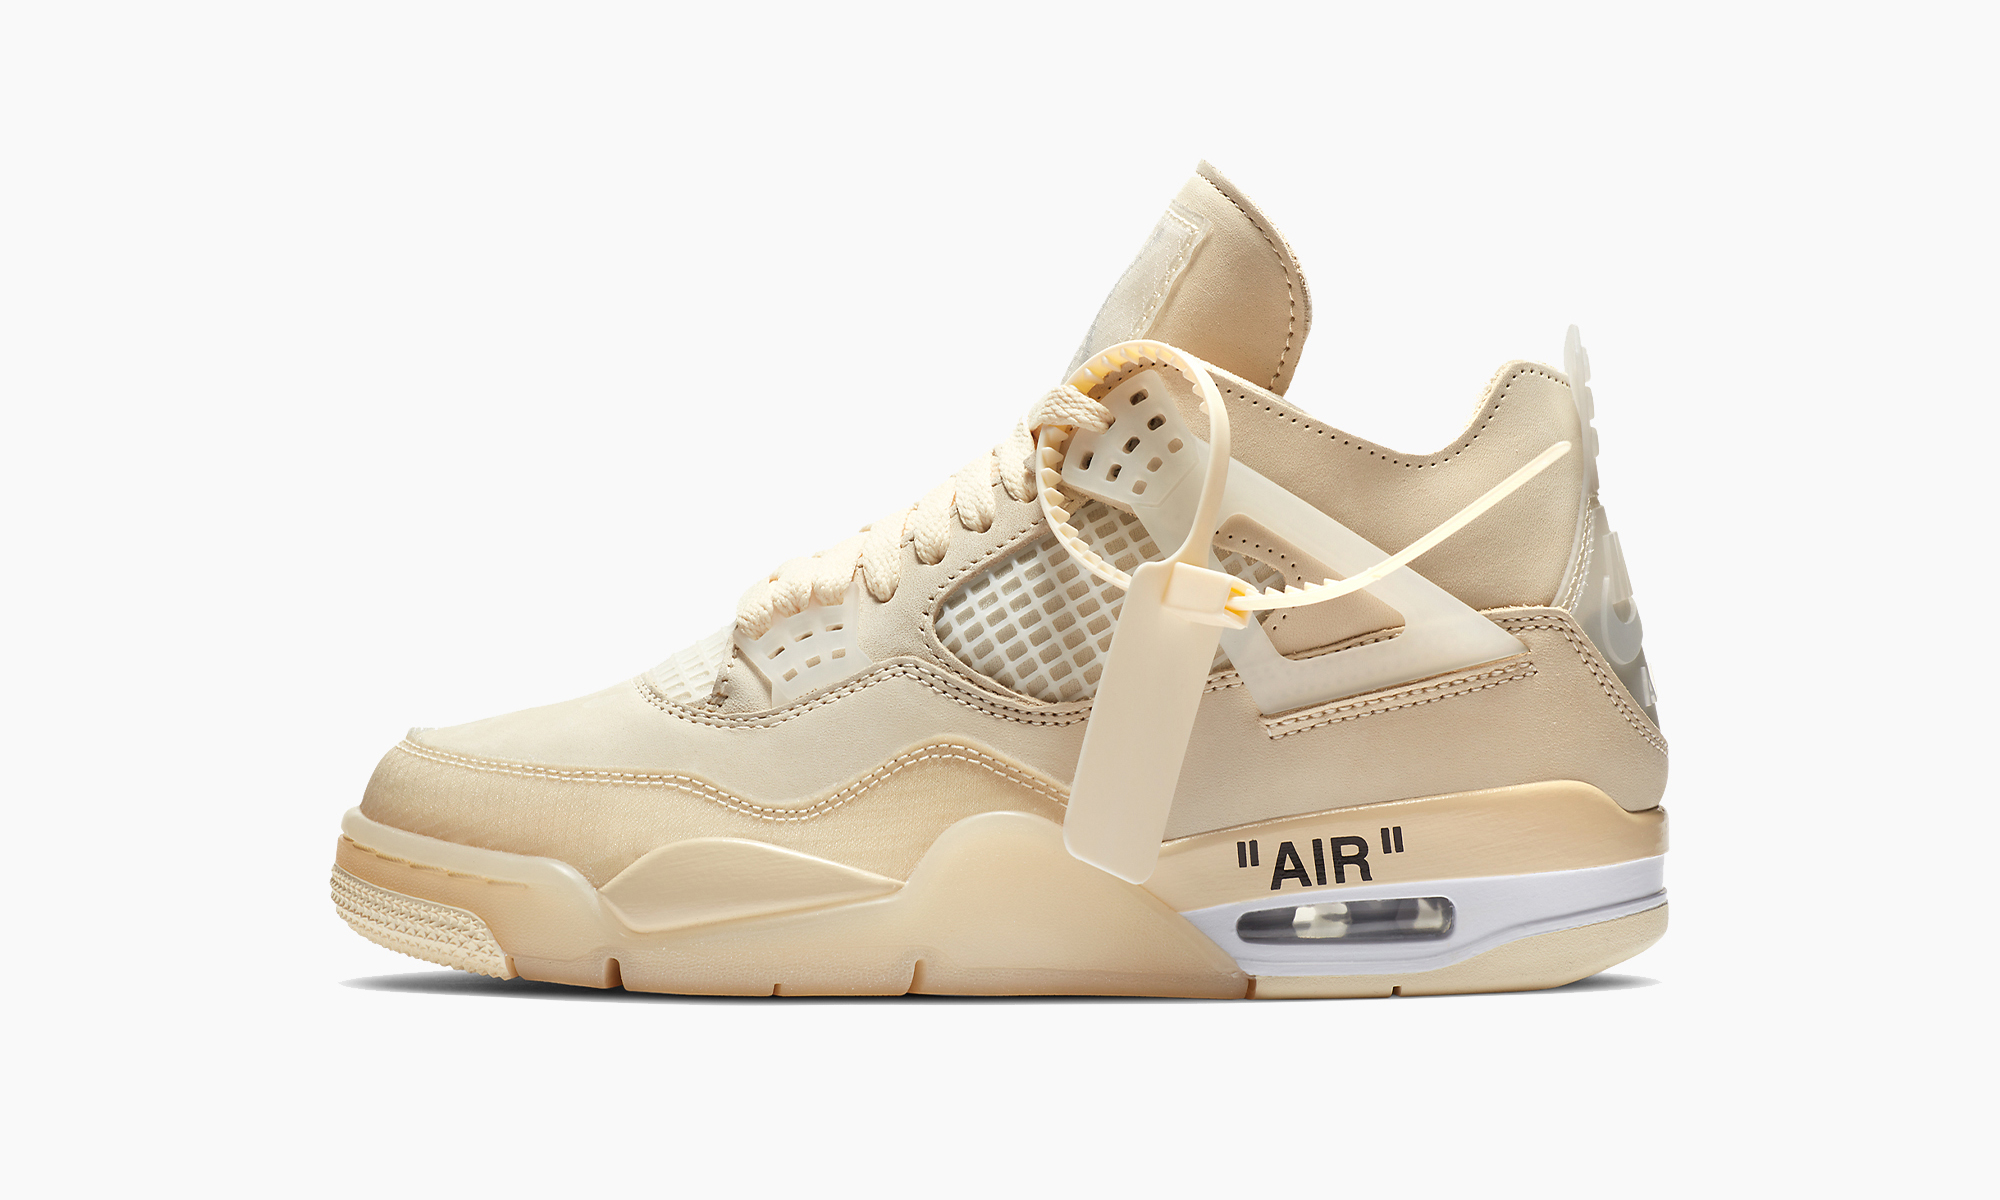 Off-White™ x Air Jordan IV「Sail」配色上架美国 SNKRS